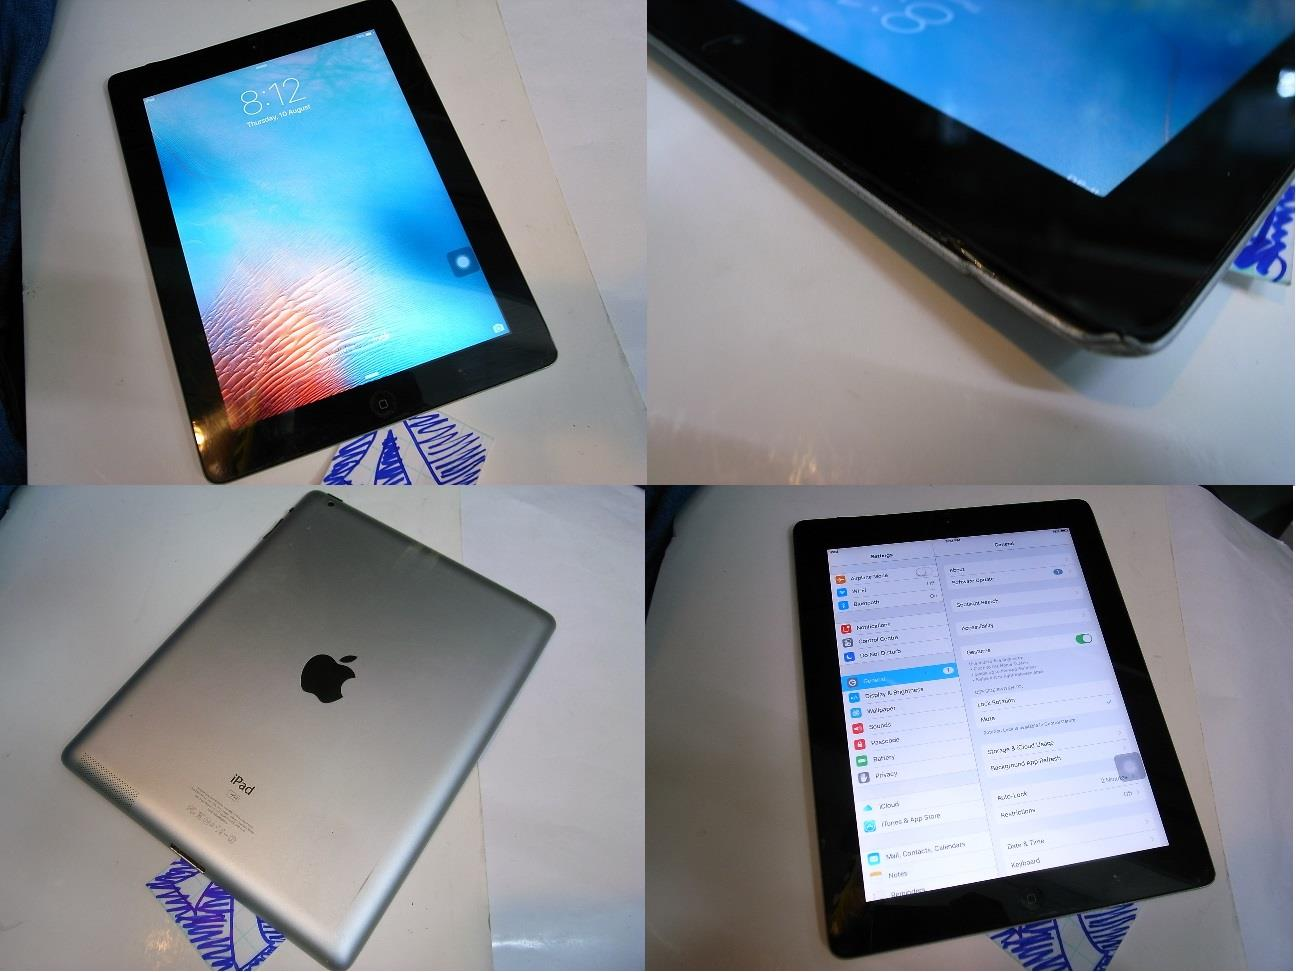 Apple IPad 2 16GB WiFi Rm380